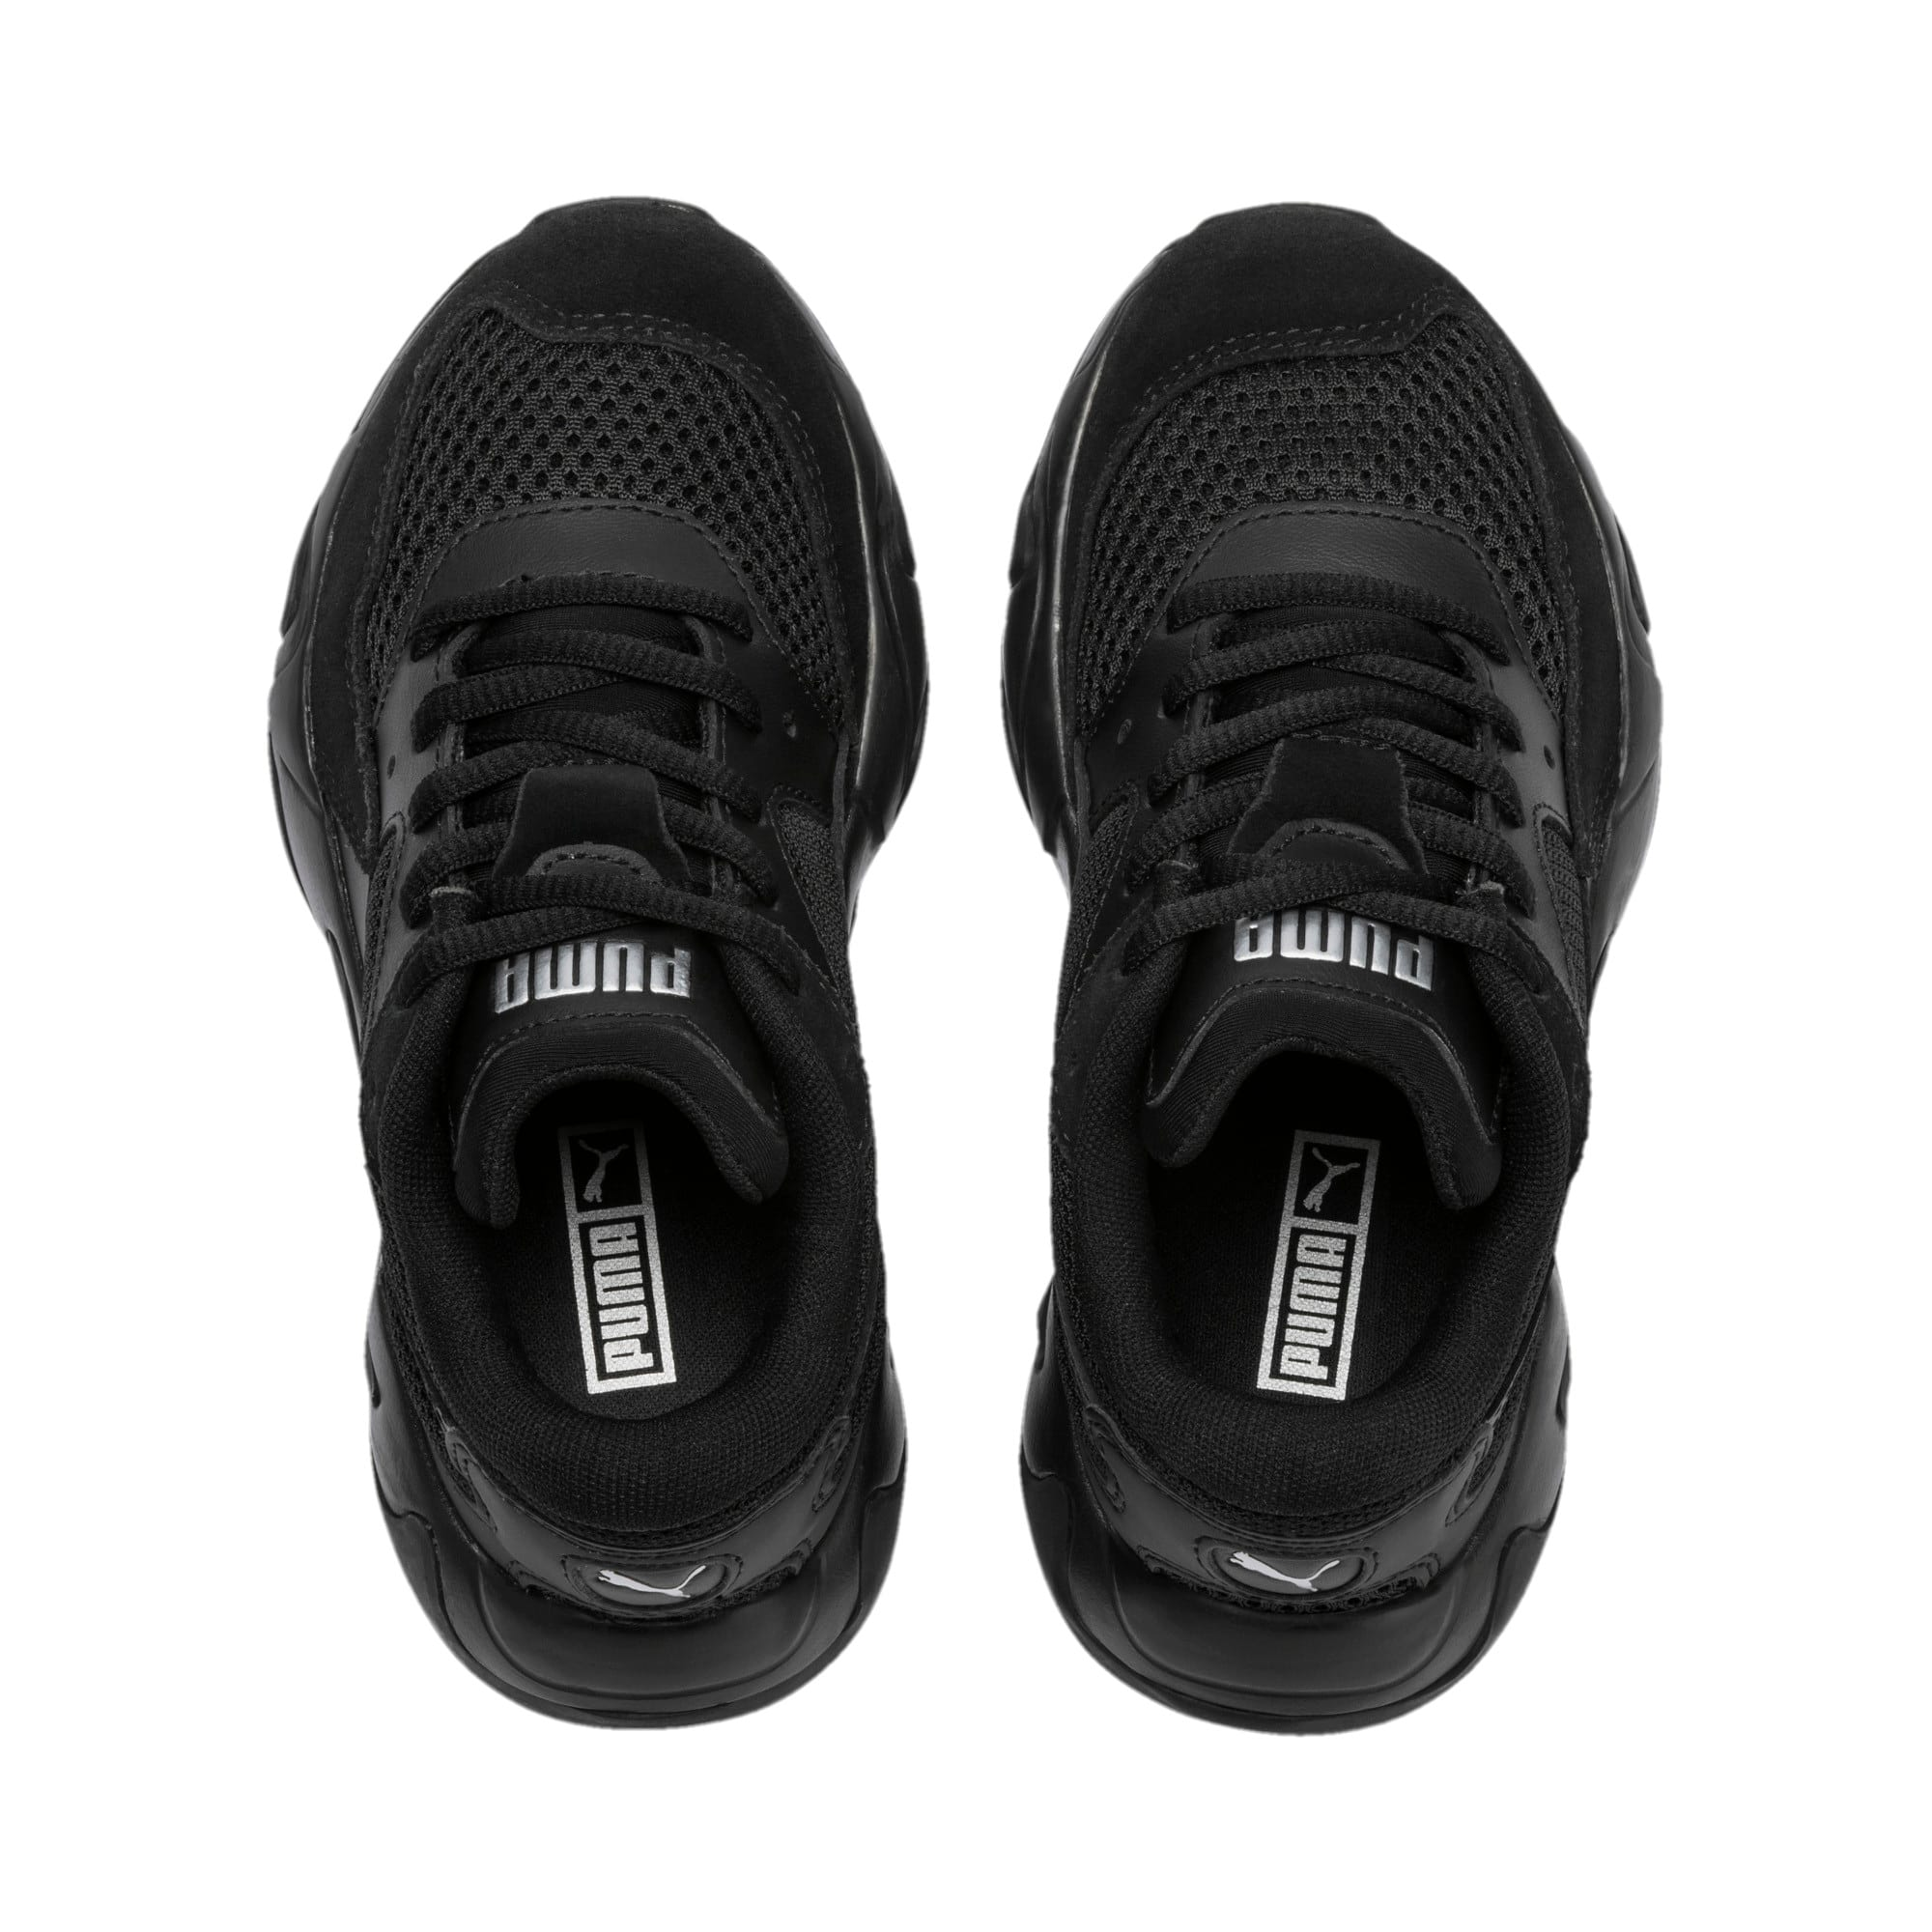 Thumbnail 6 van Storm Origin kindersportschoenen, Puma Black, medium